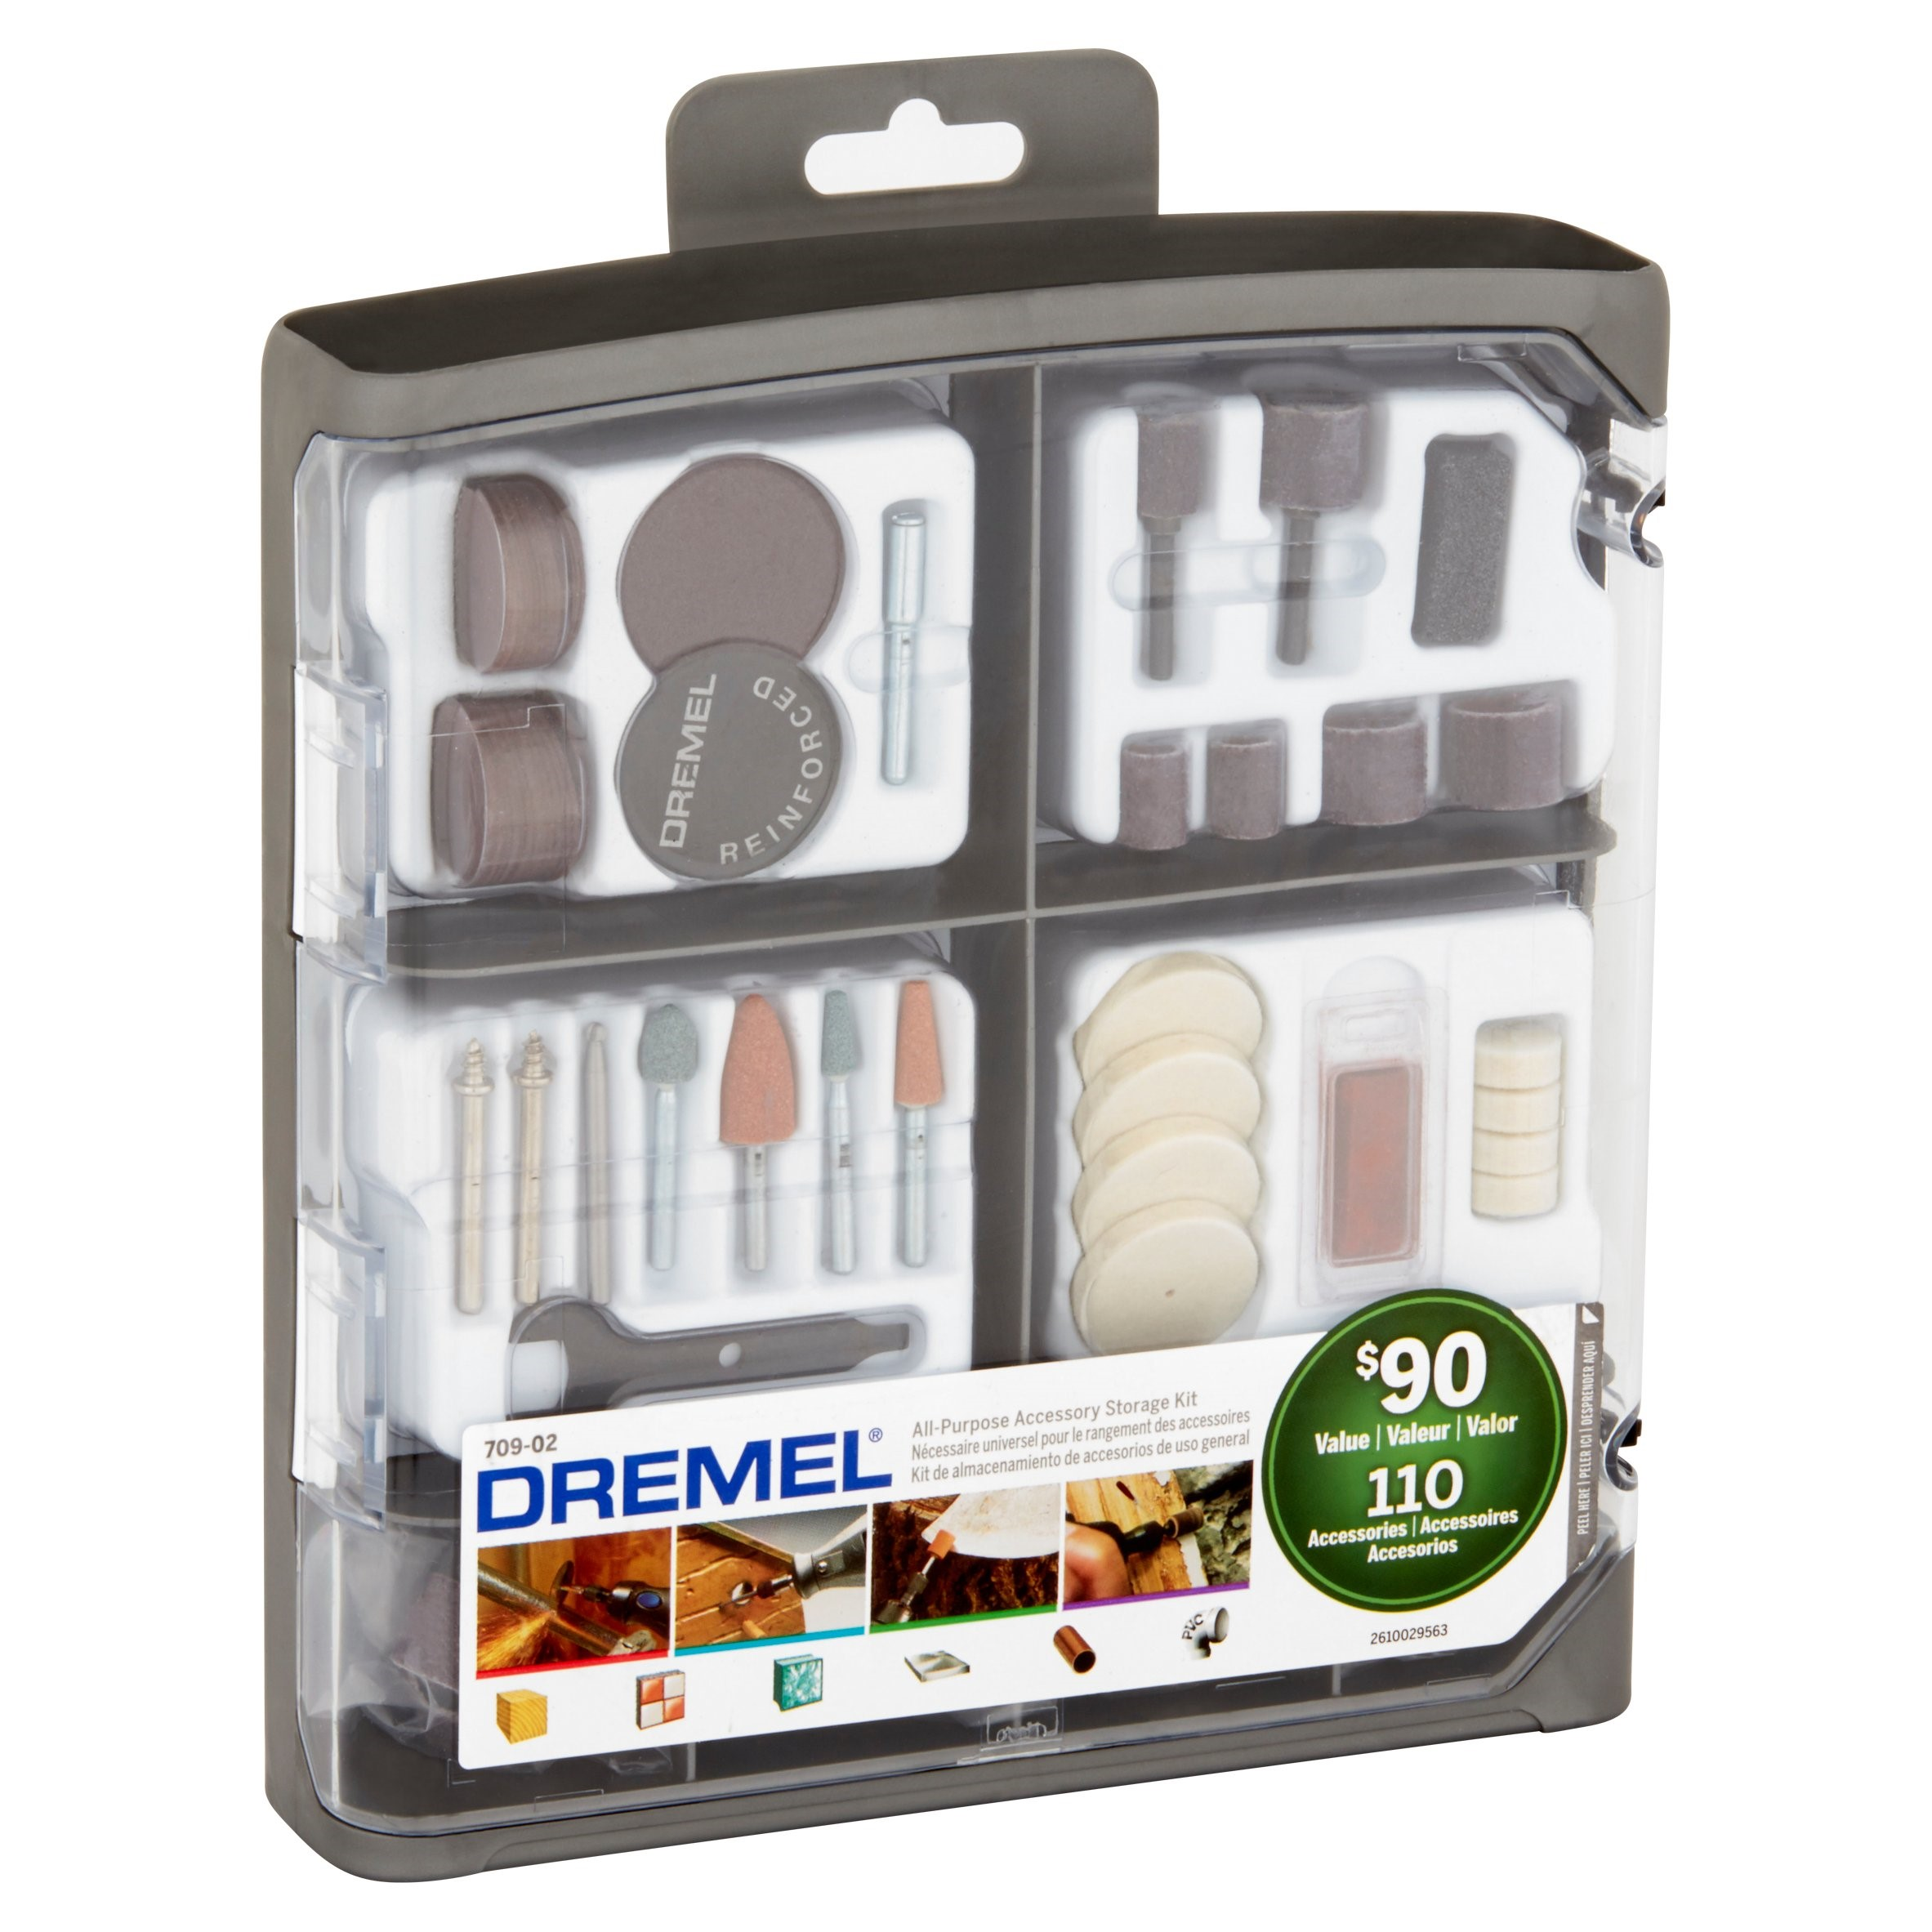 Location Dremel Dremel 709 02 110 Piece All Purpose Accessory Storage Kit